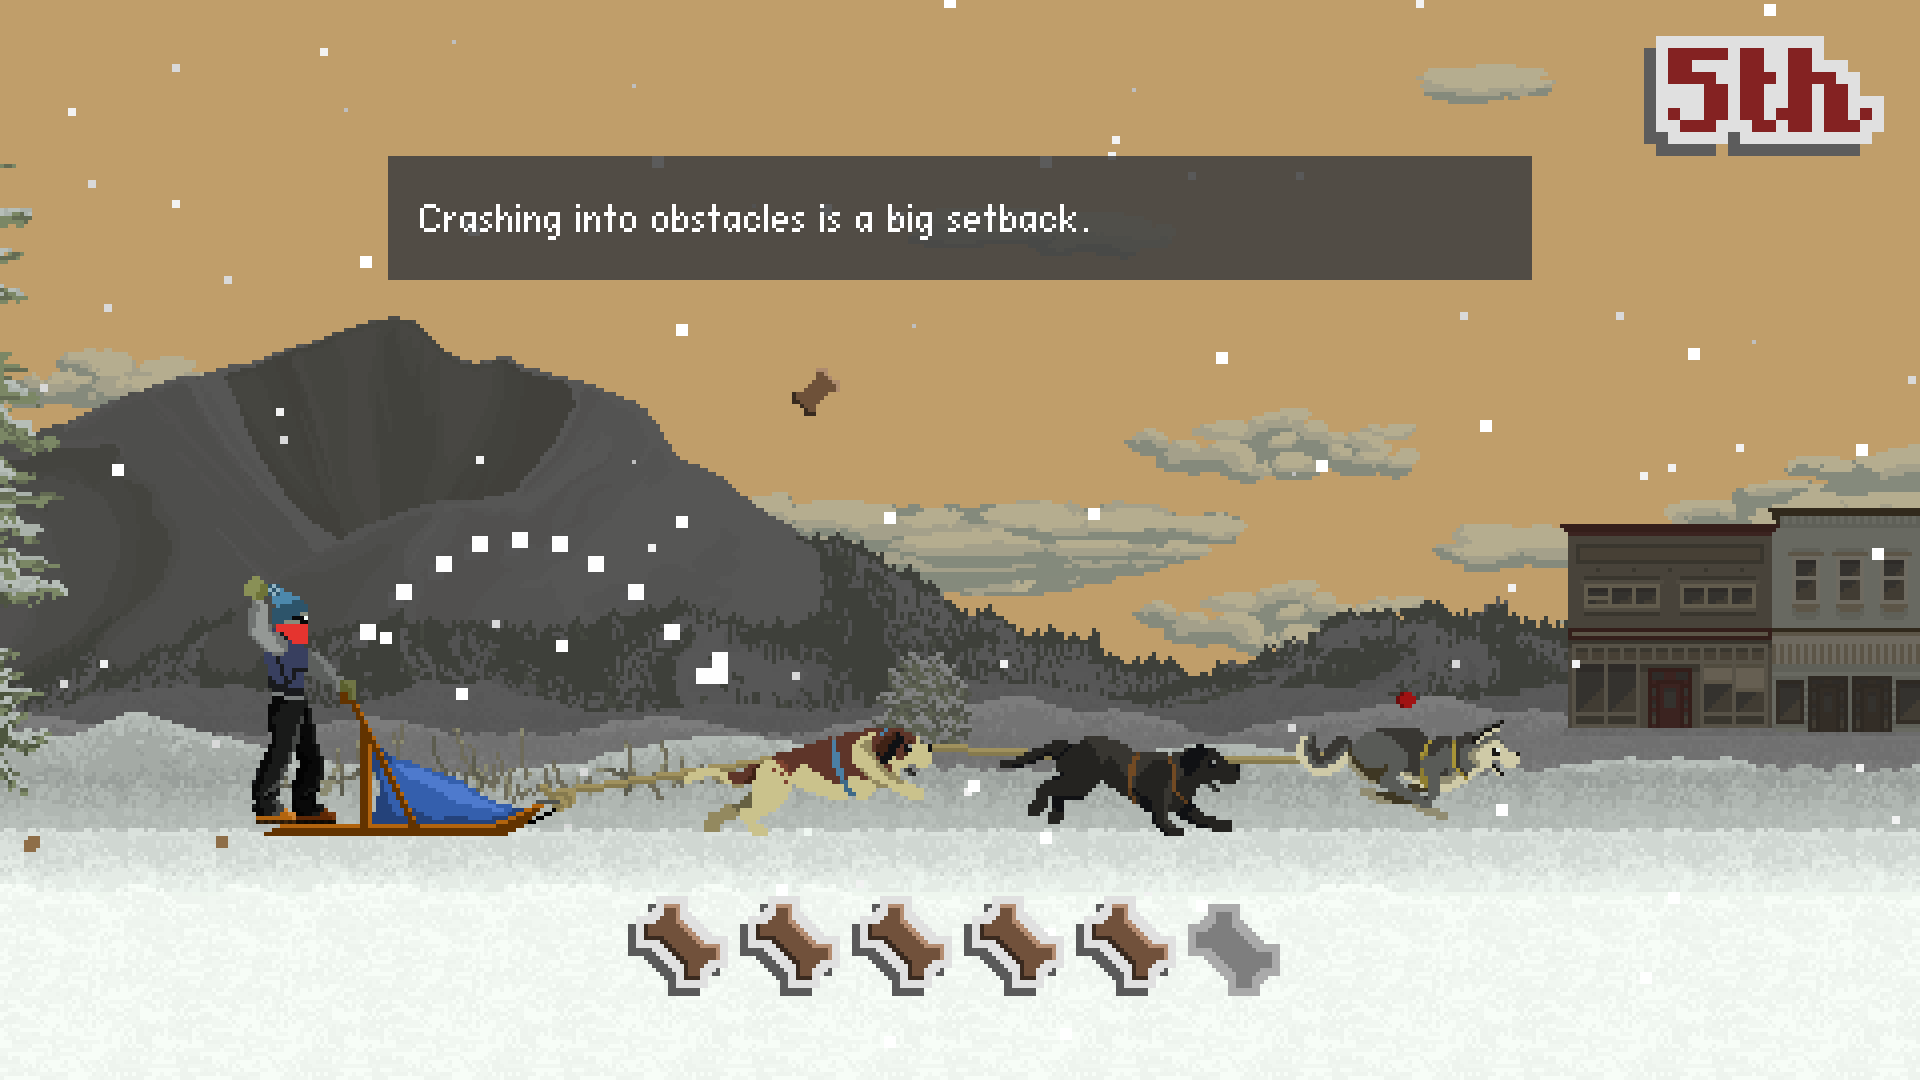 Exhibitor Booth Games : Dog sled saga indie megabooth